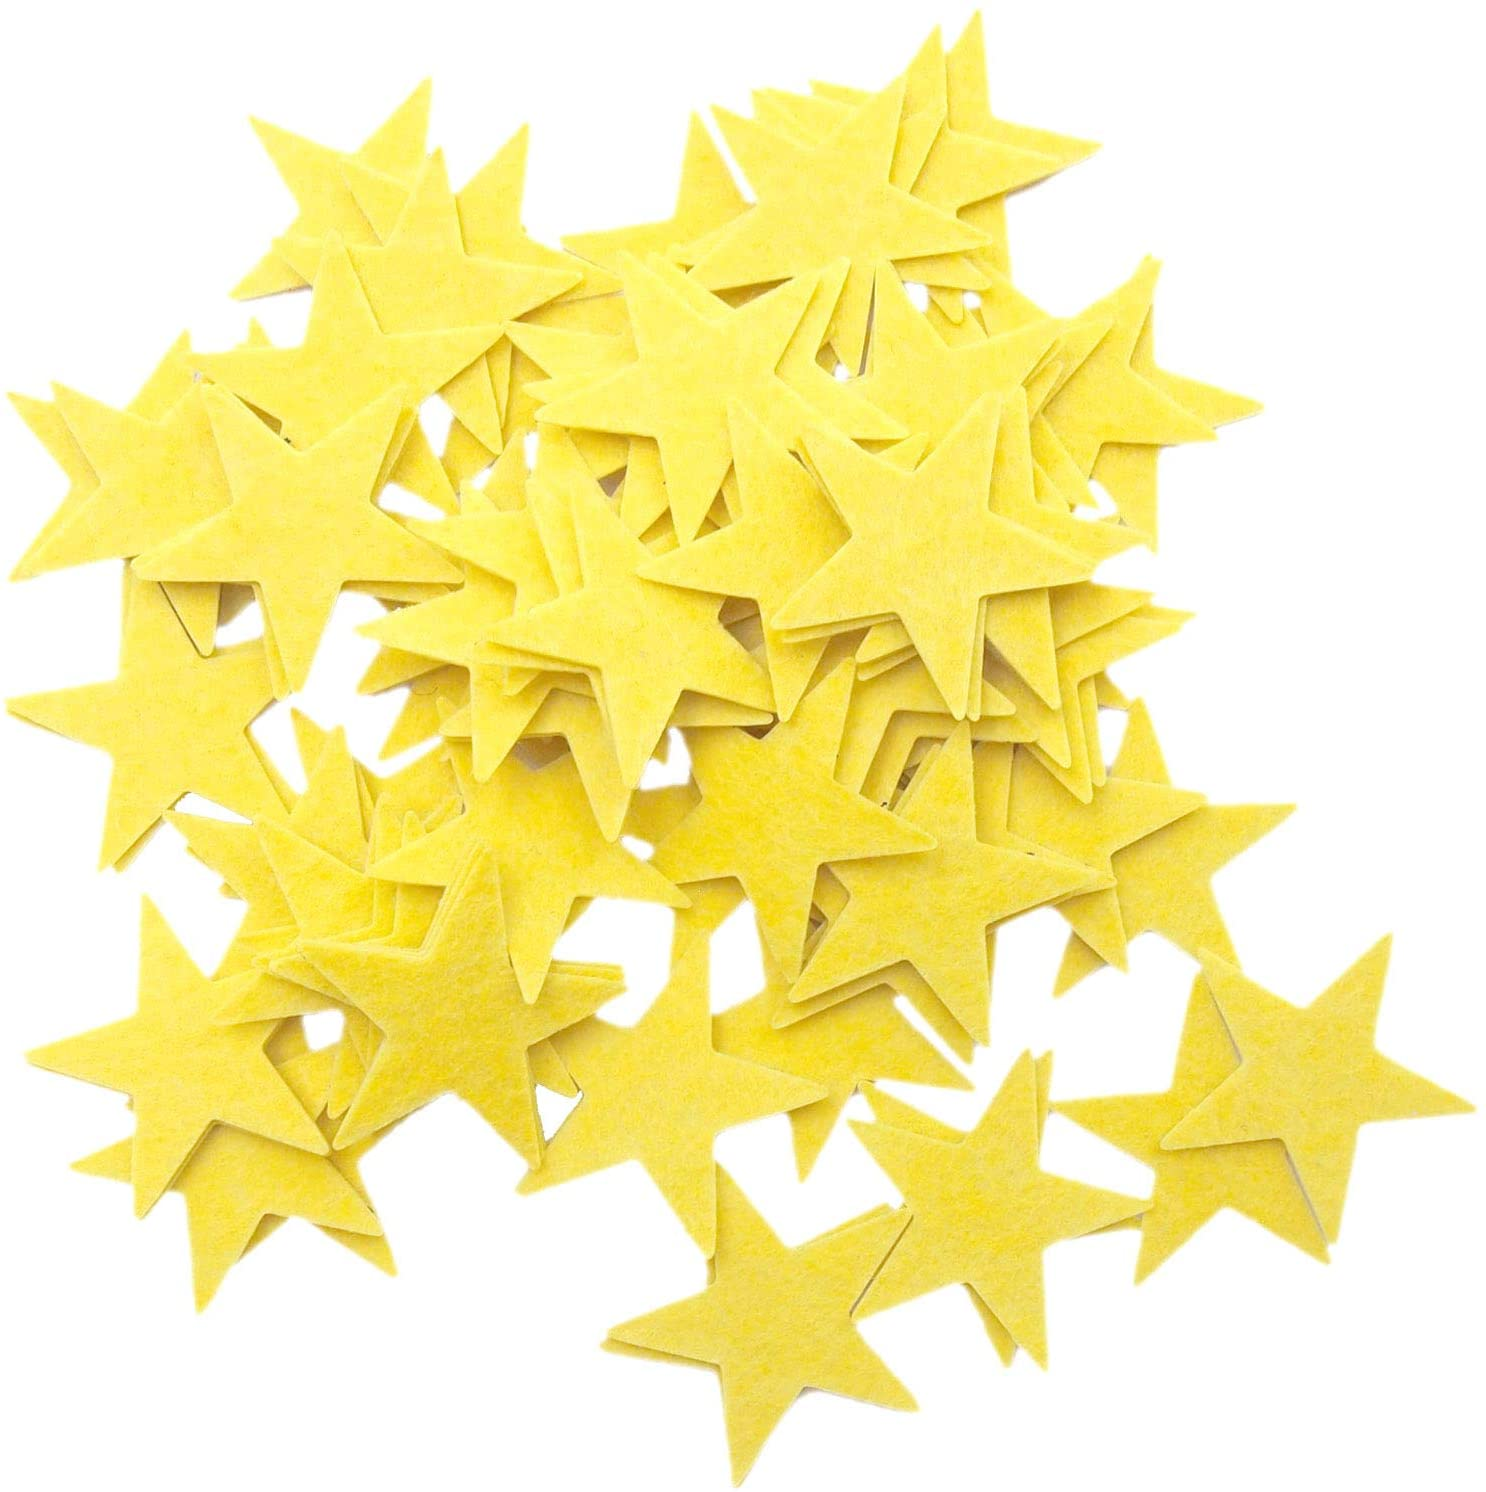 Playfully Ever After 1.5 inch Stiff Felt Stars 88pc (Yellow)